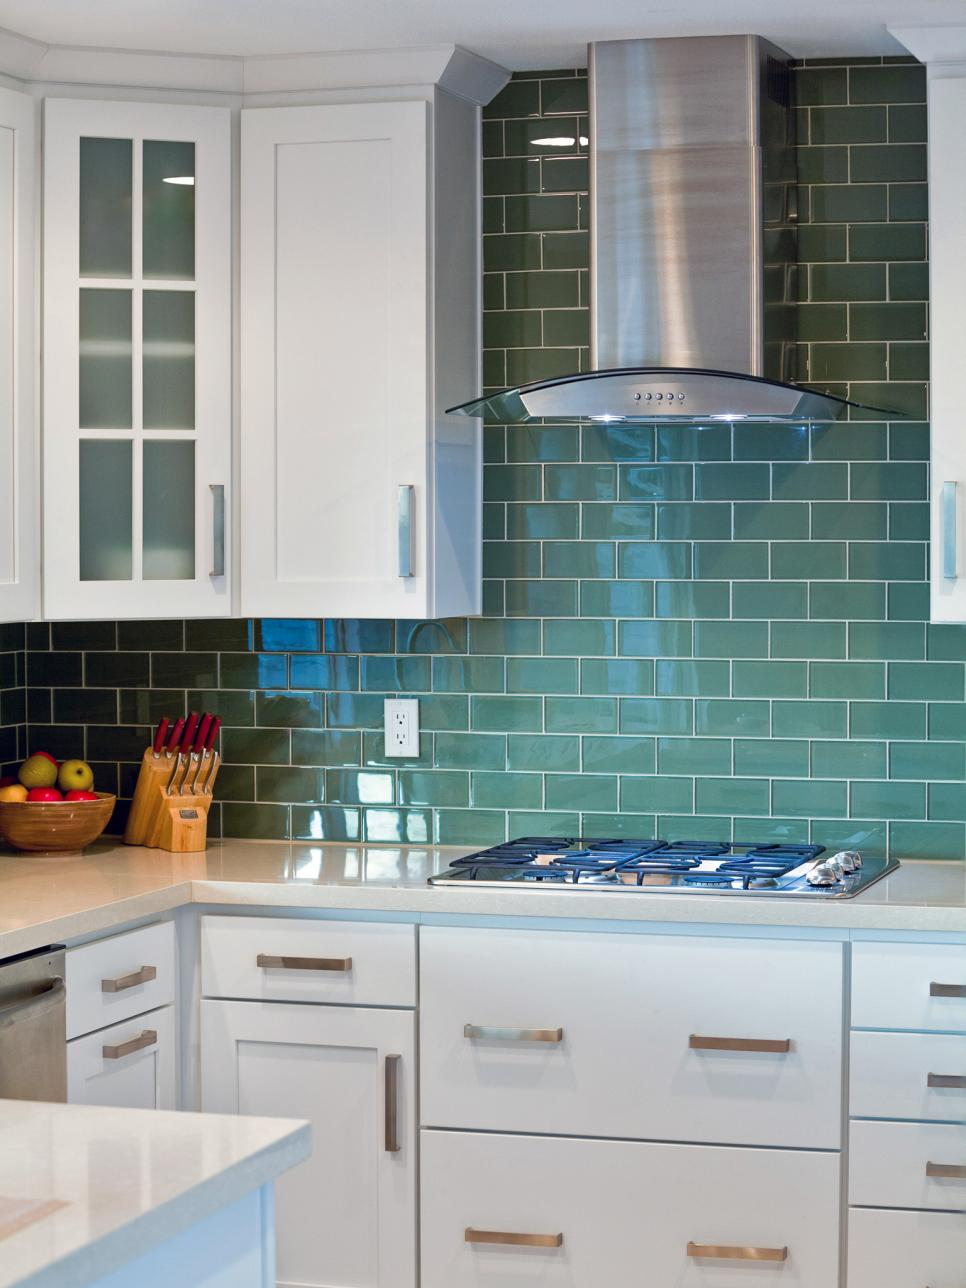 Do You Have What It Takes To Go Bold In The Kitchen? - Realty Times